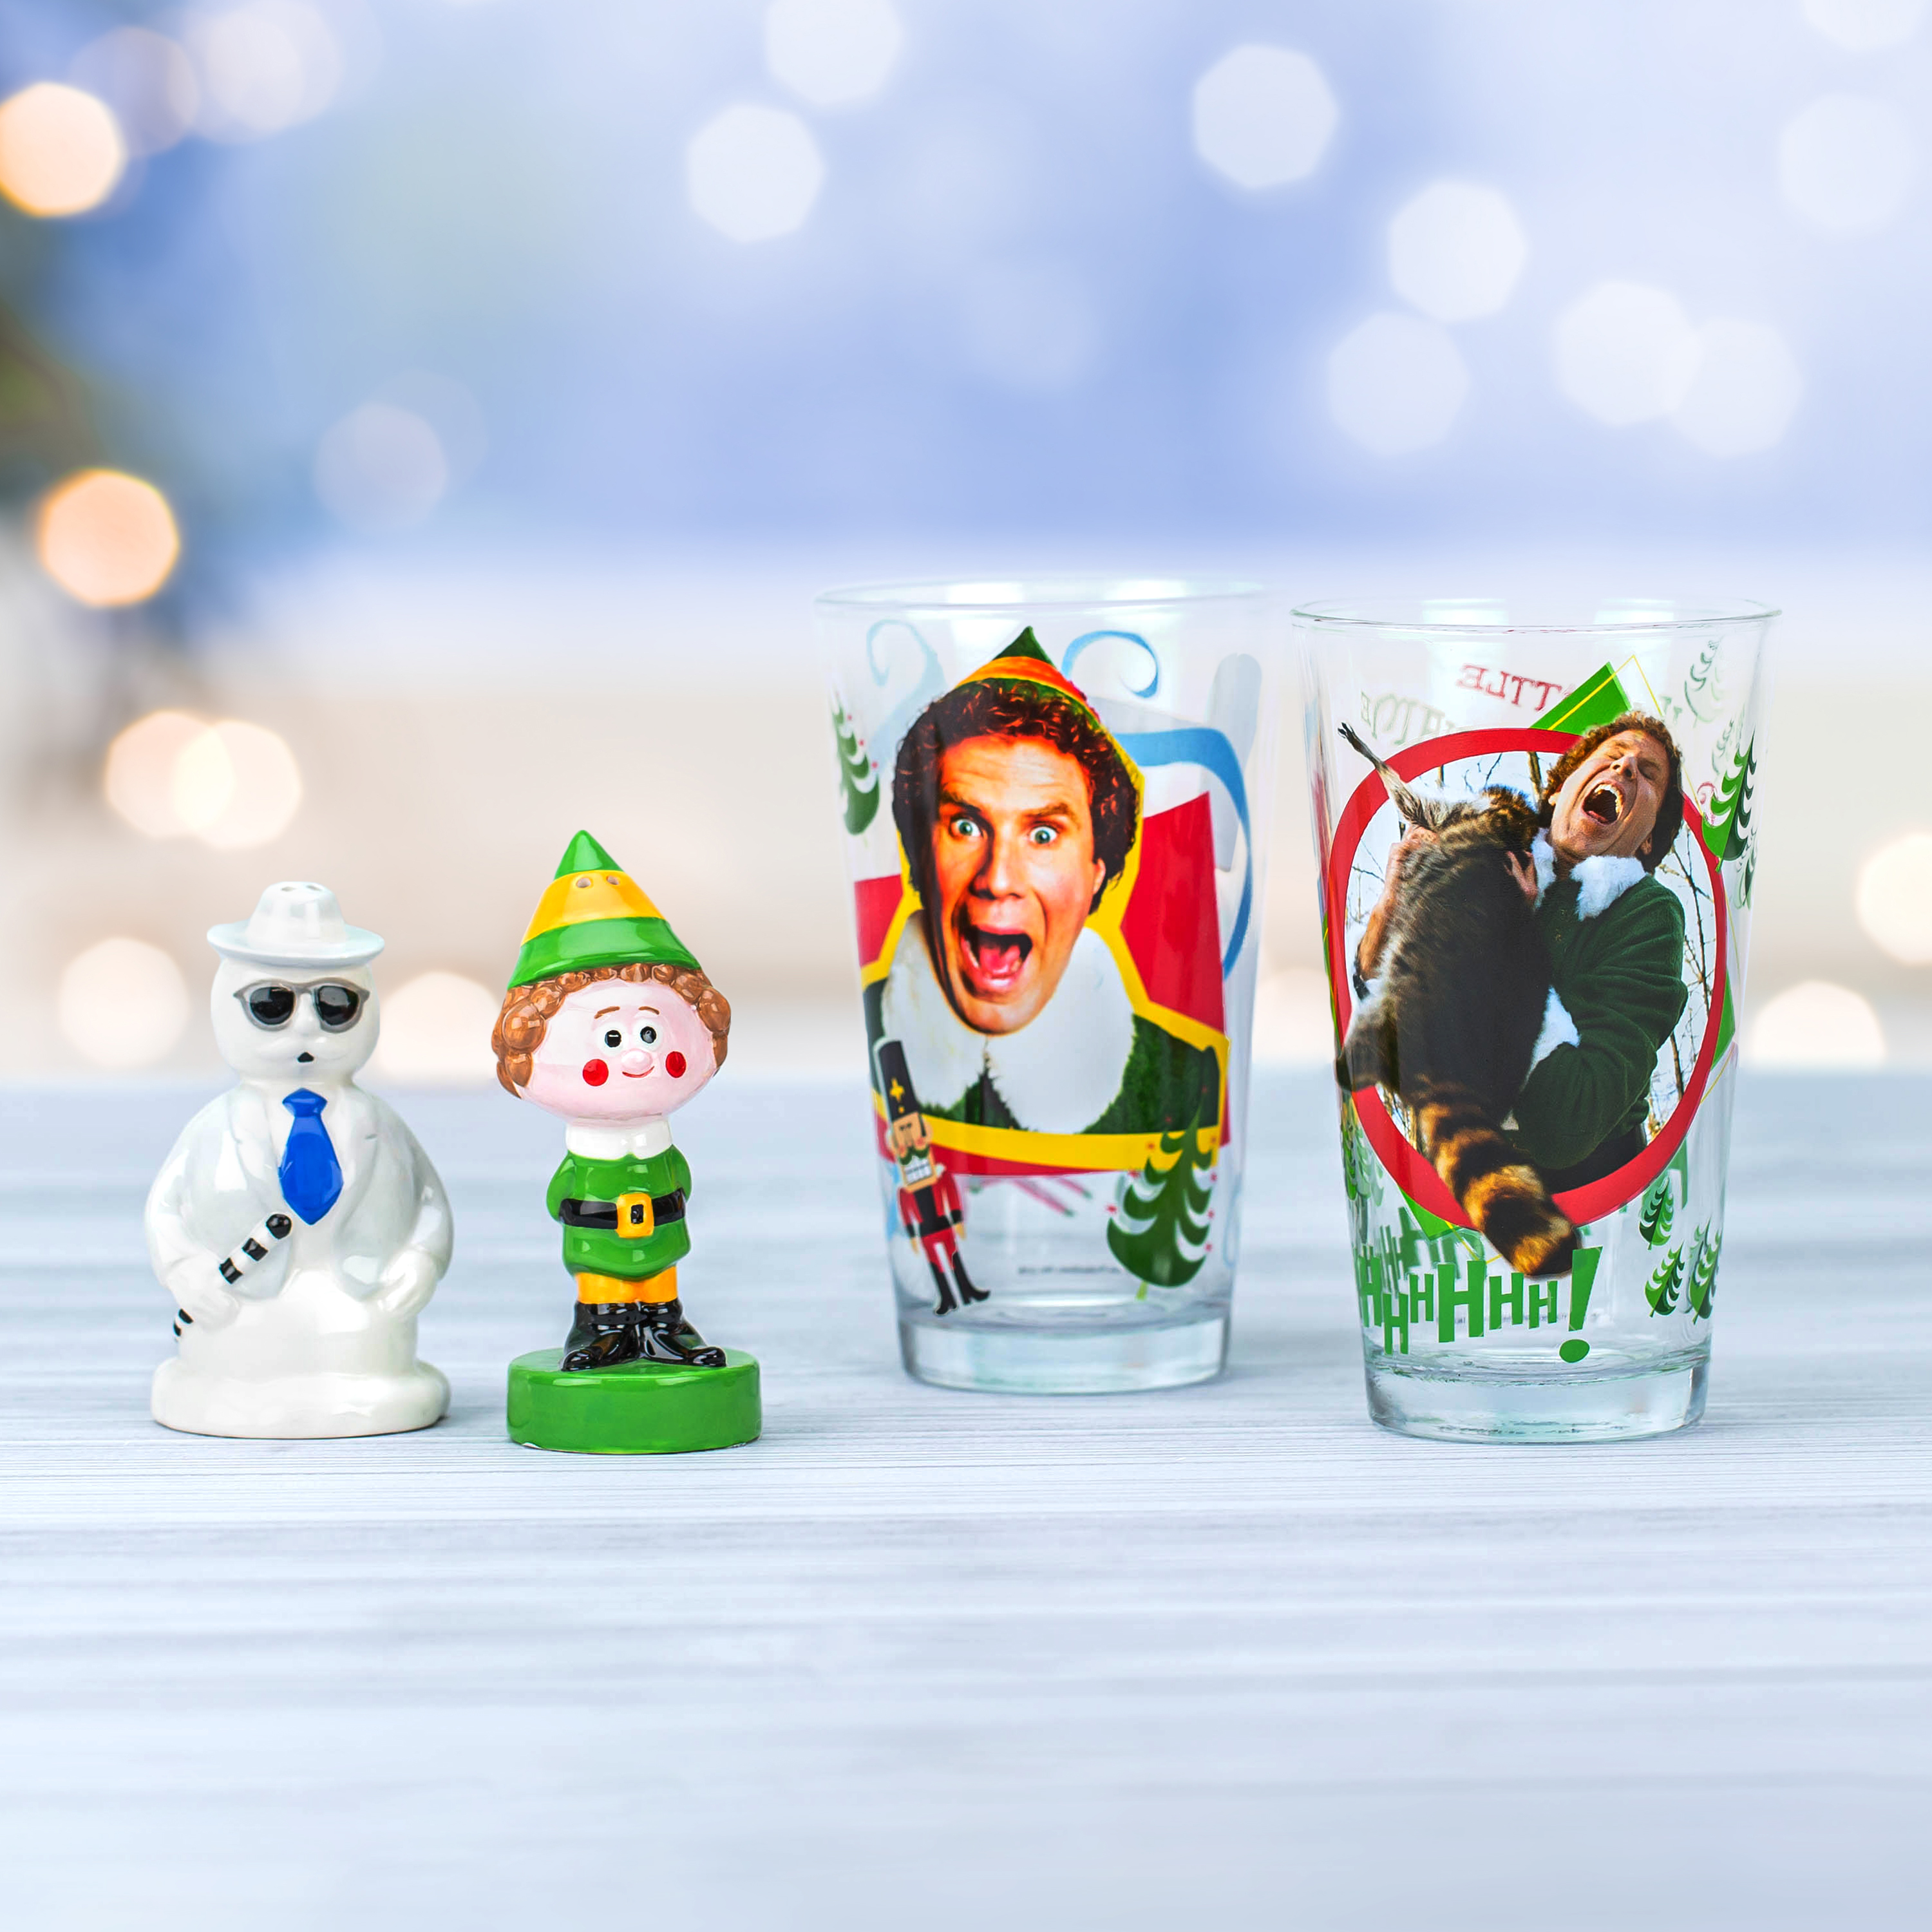 Christmas Collectibles Salt and Pepper Shaker Set, Elf & Snowman, 2-piece set slideshow image 8